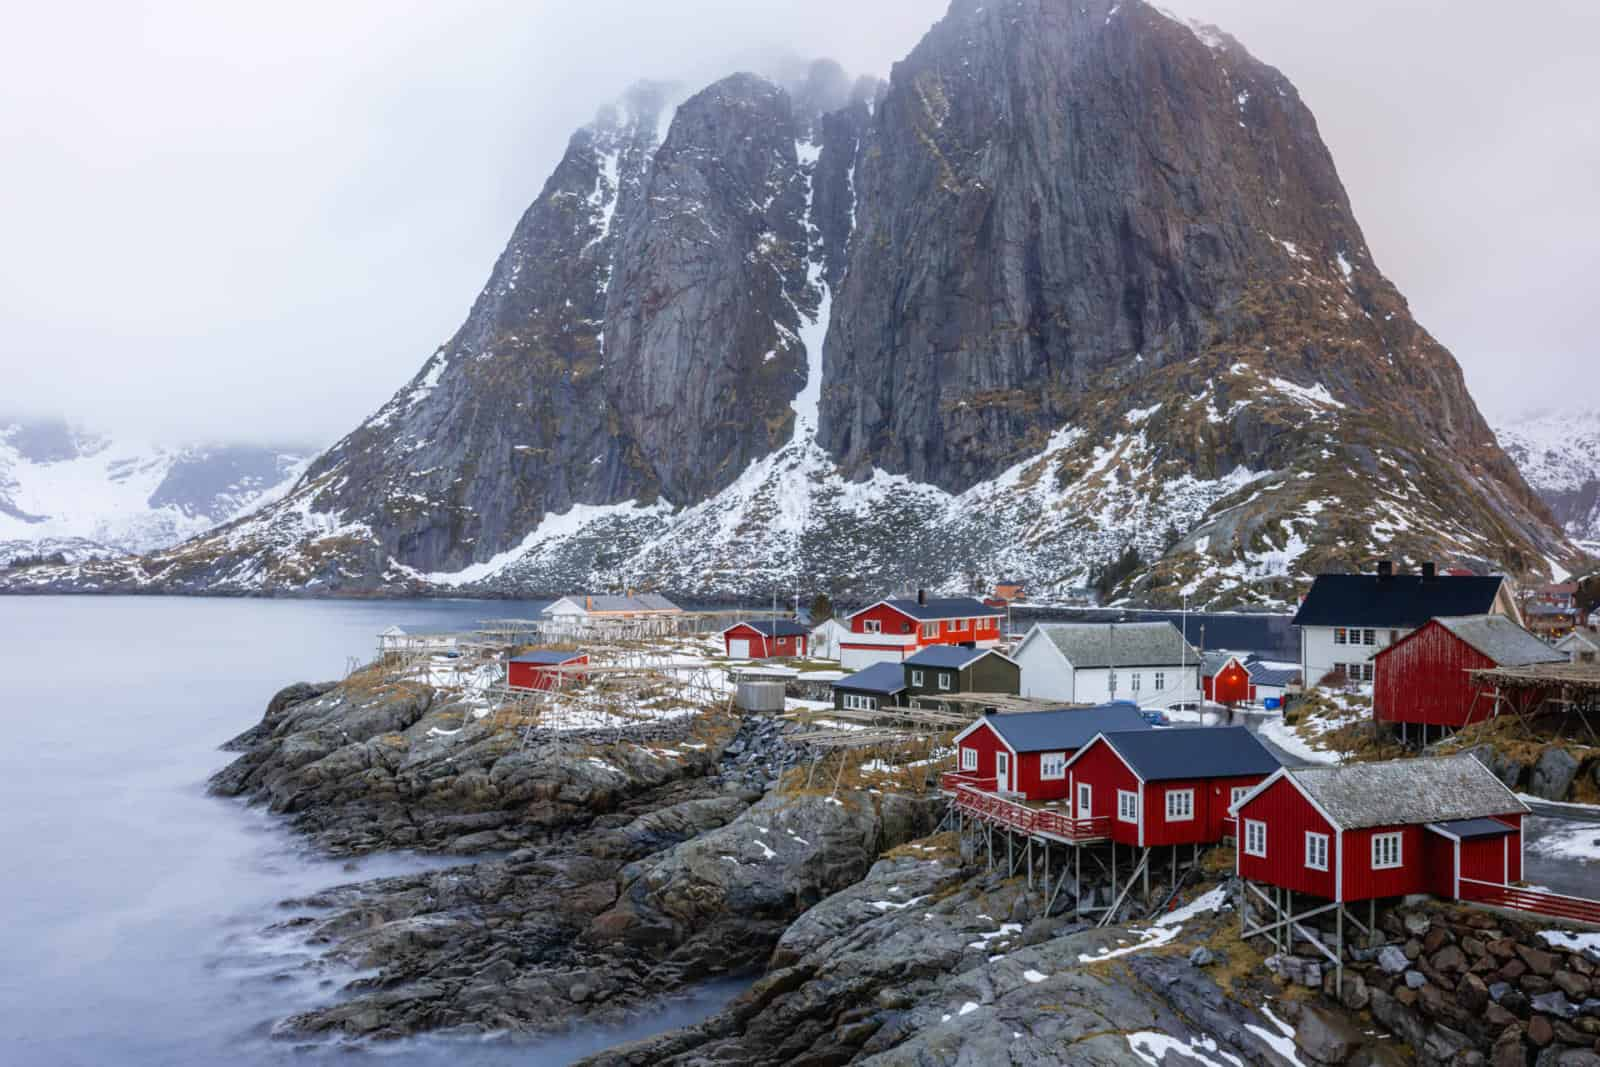 Best places to go in Europe in March - Lofoten Islands in March